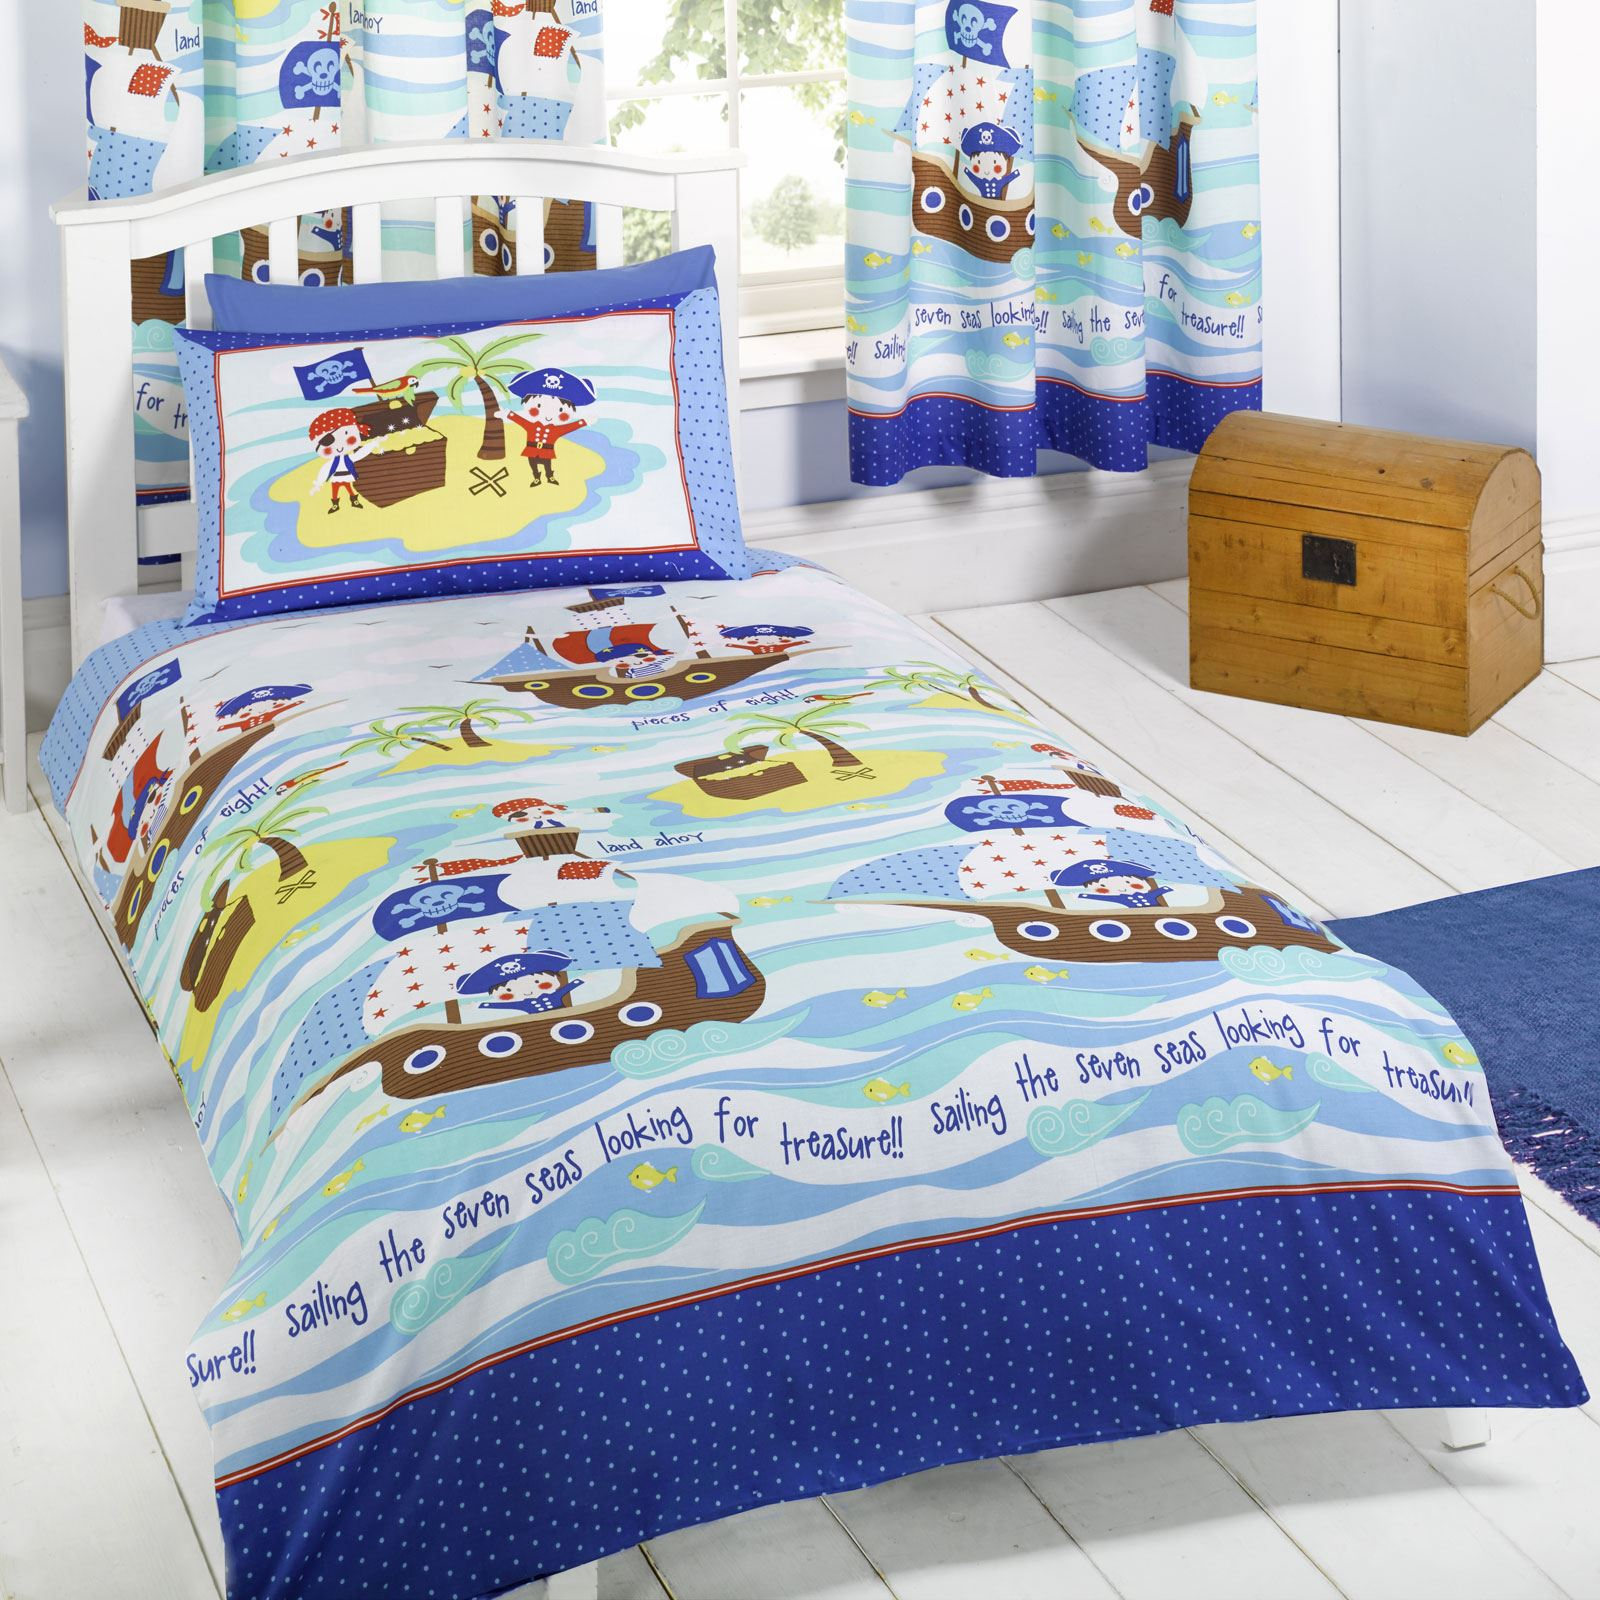 Character and themed single duvet cover kids bedding sets for Parure de lit housse de couette 220x240